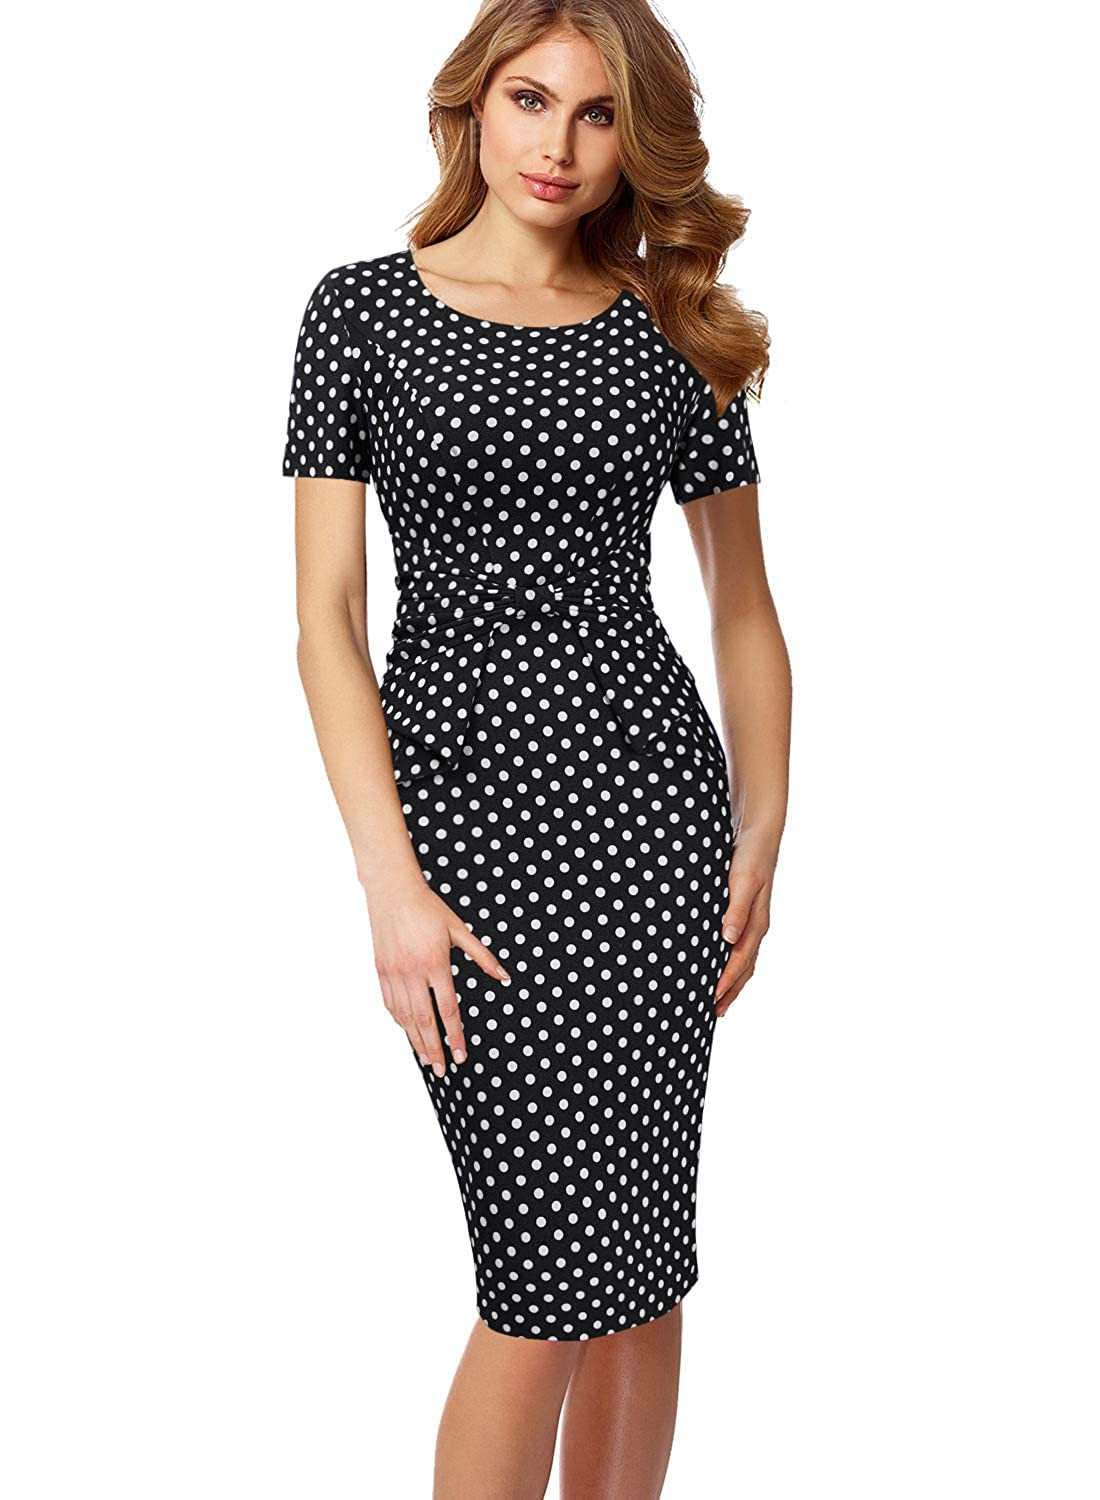 Black White Dot Short Sleeve VFSHOW Womens Pleated Bow Wear to Work Business Office Church Sheath Dress